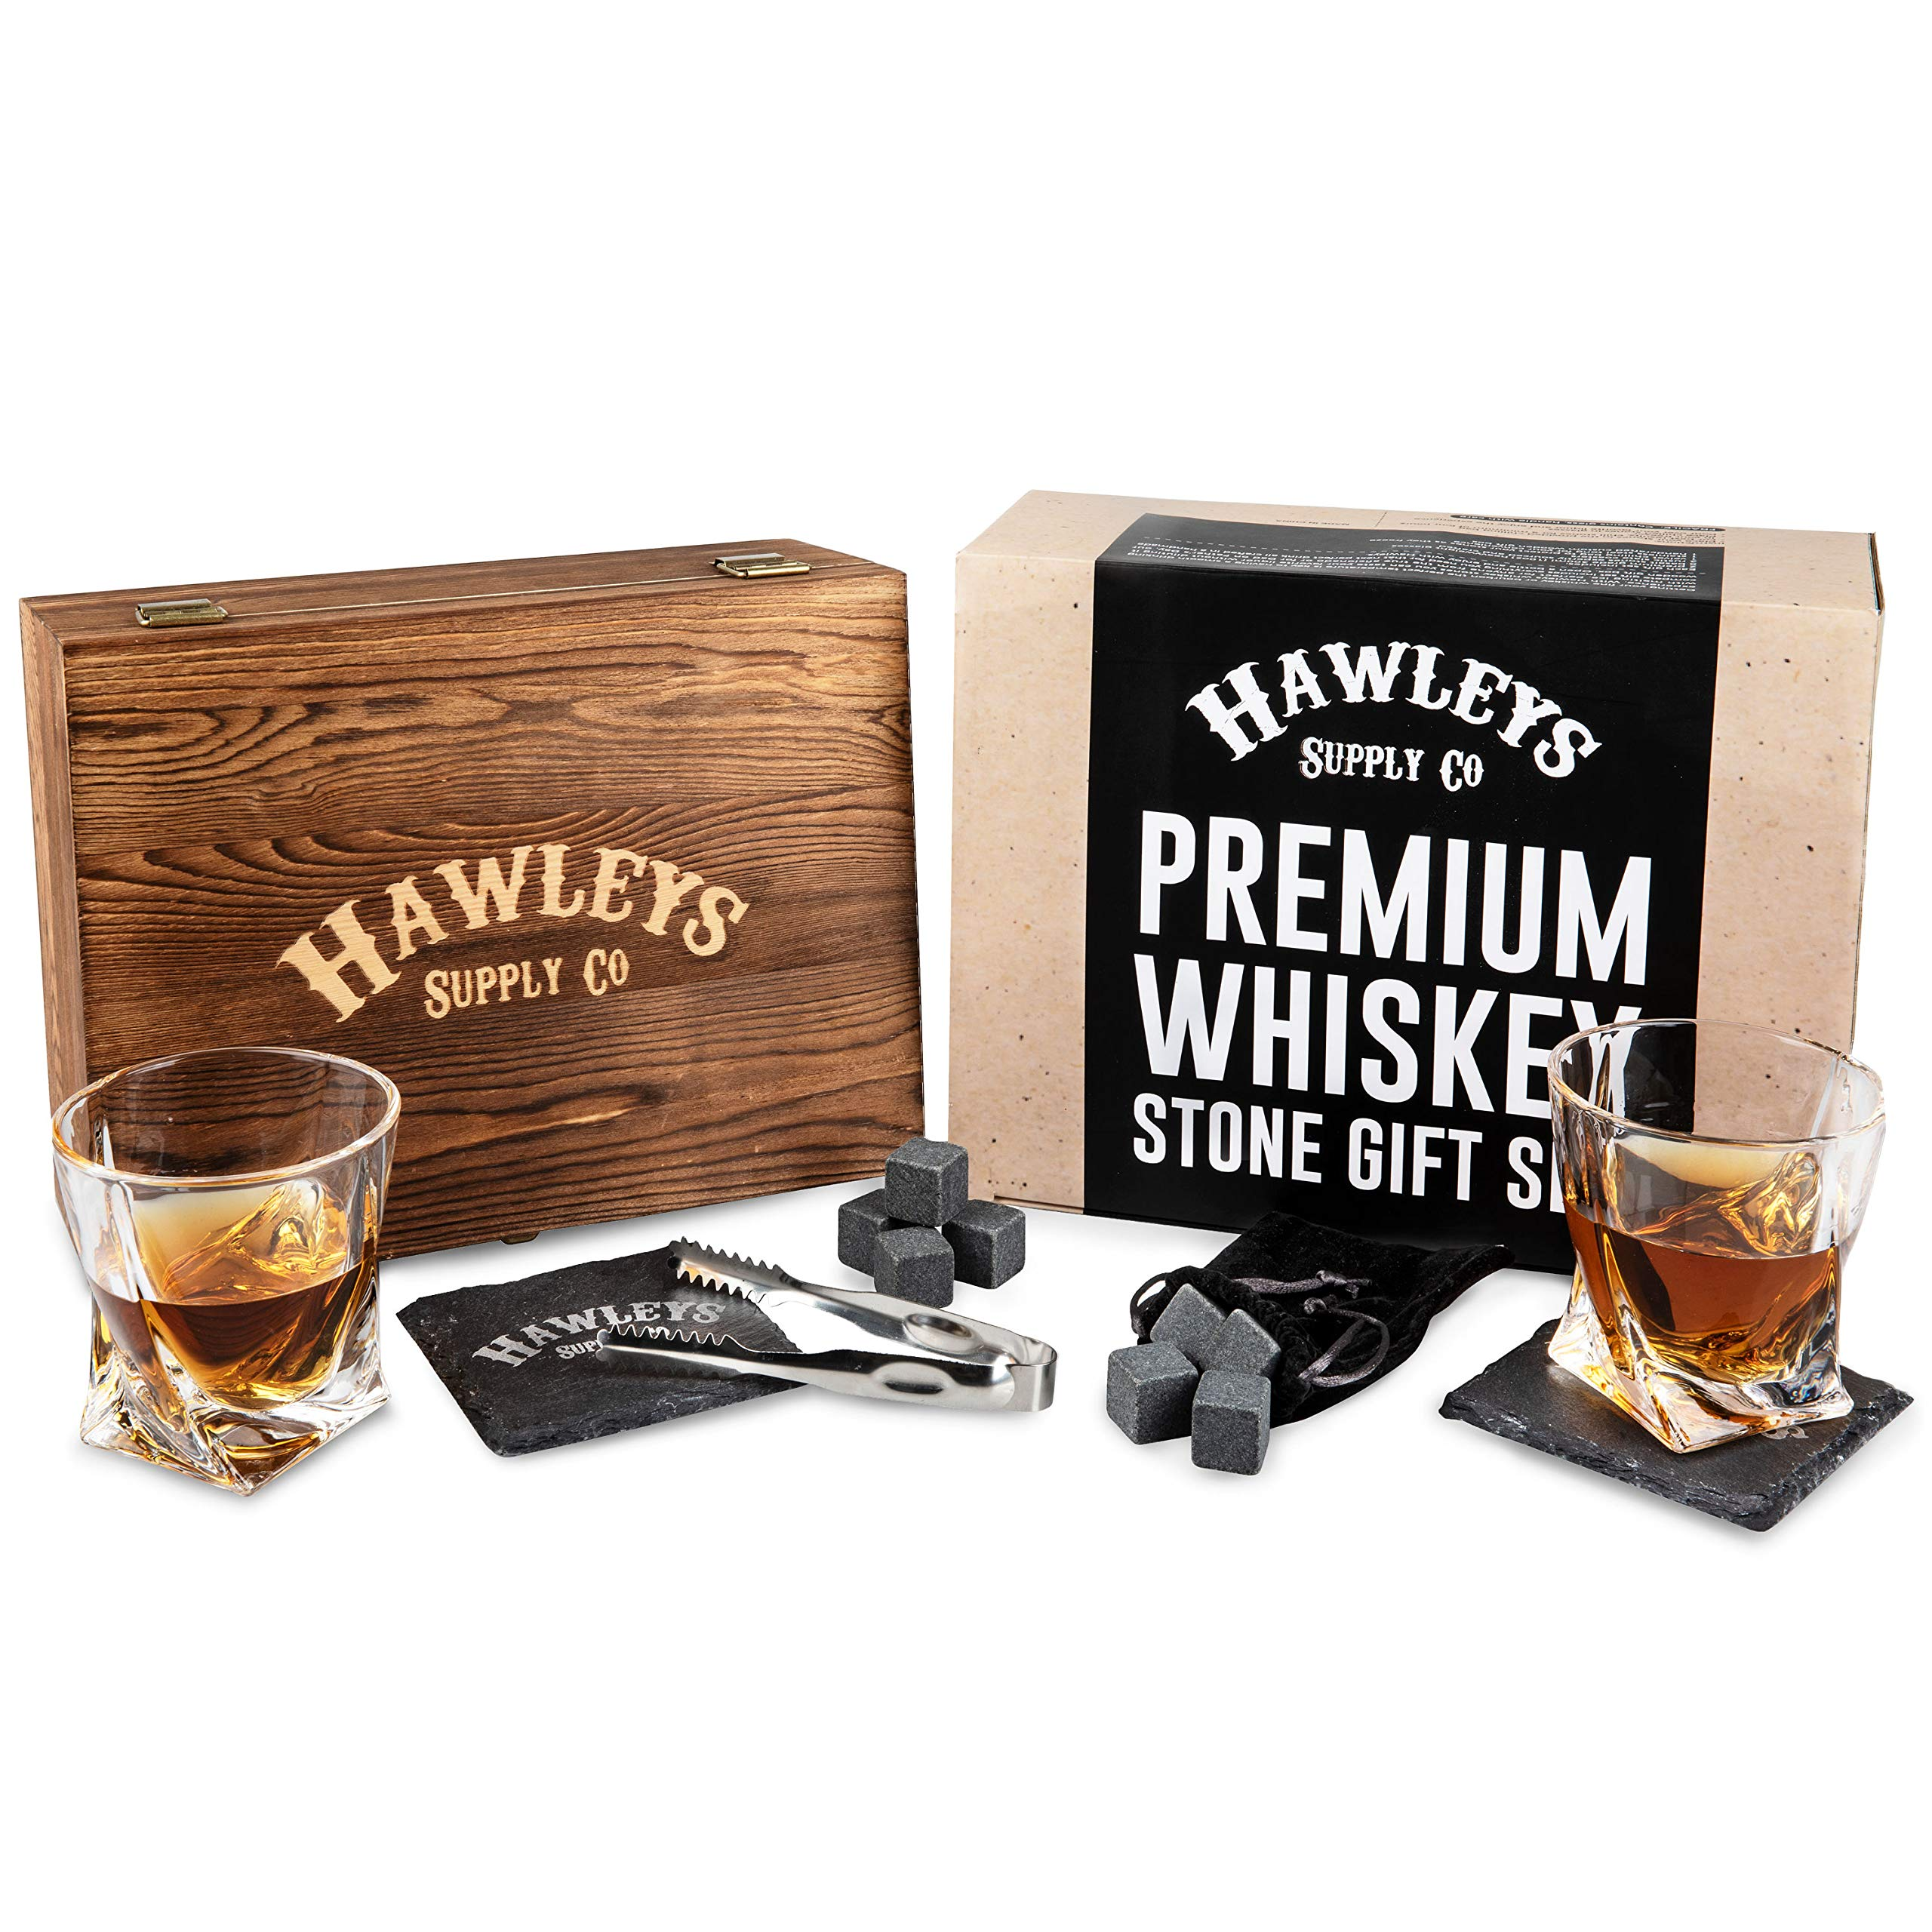 Whiskey Stones Glass Gift Set - For Scotch, Whisky, Bourbon, or Your Tasting Liquor/Alcohol. Perfect Gifts for Men. Wooden Box, 2 Large Crystal Drinking Glasses, 8 Granite Stone Ice Rocks